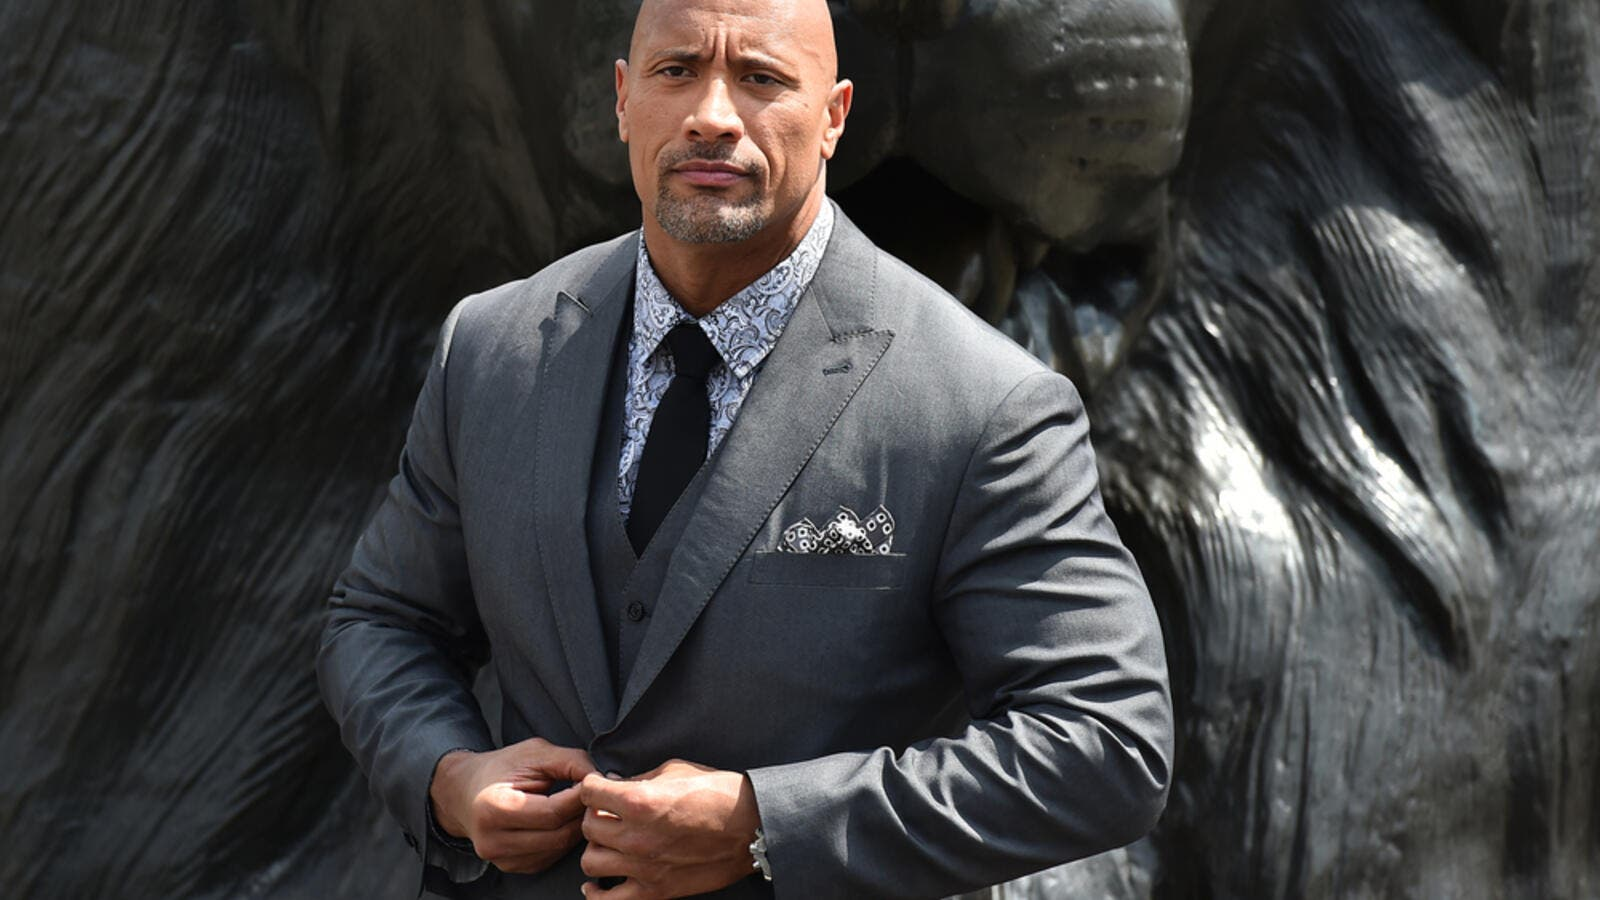 Dwayne Johnson to Get the Generation Award for his 'Iconic Work'